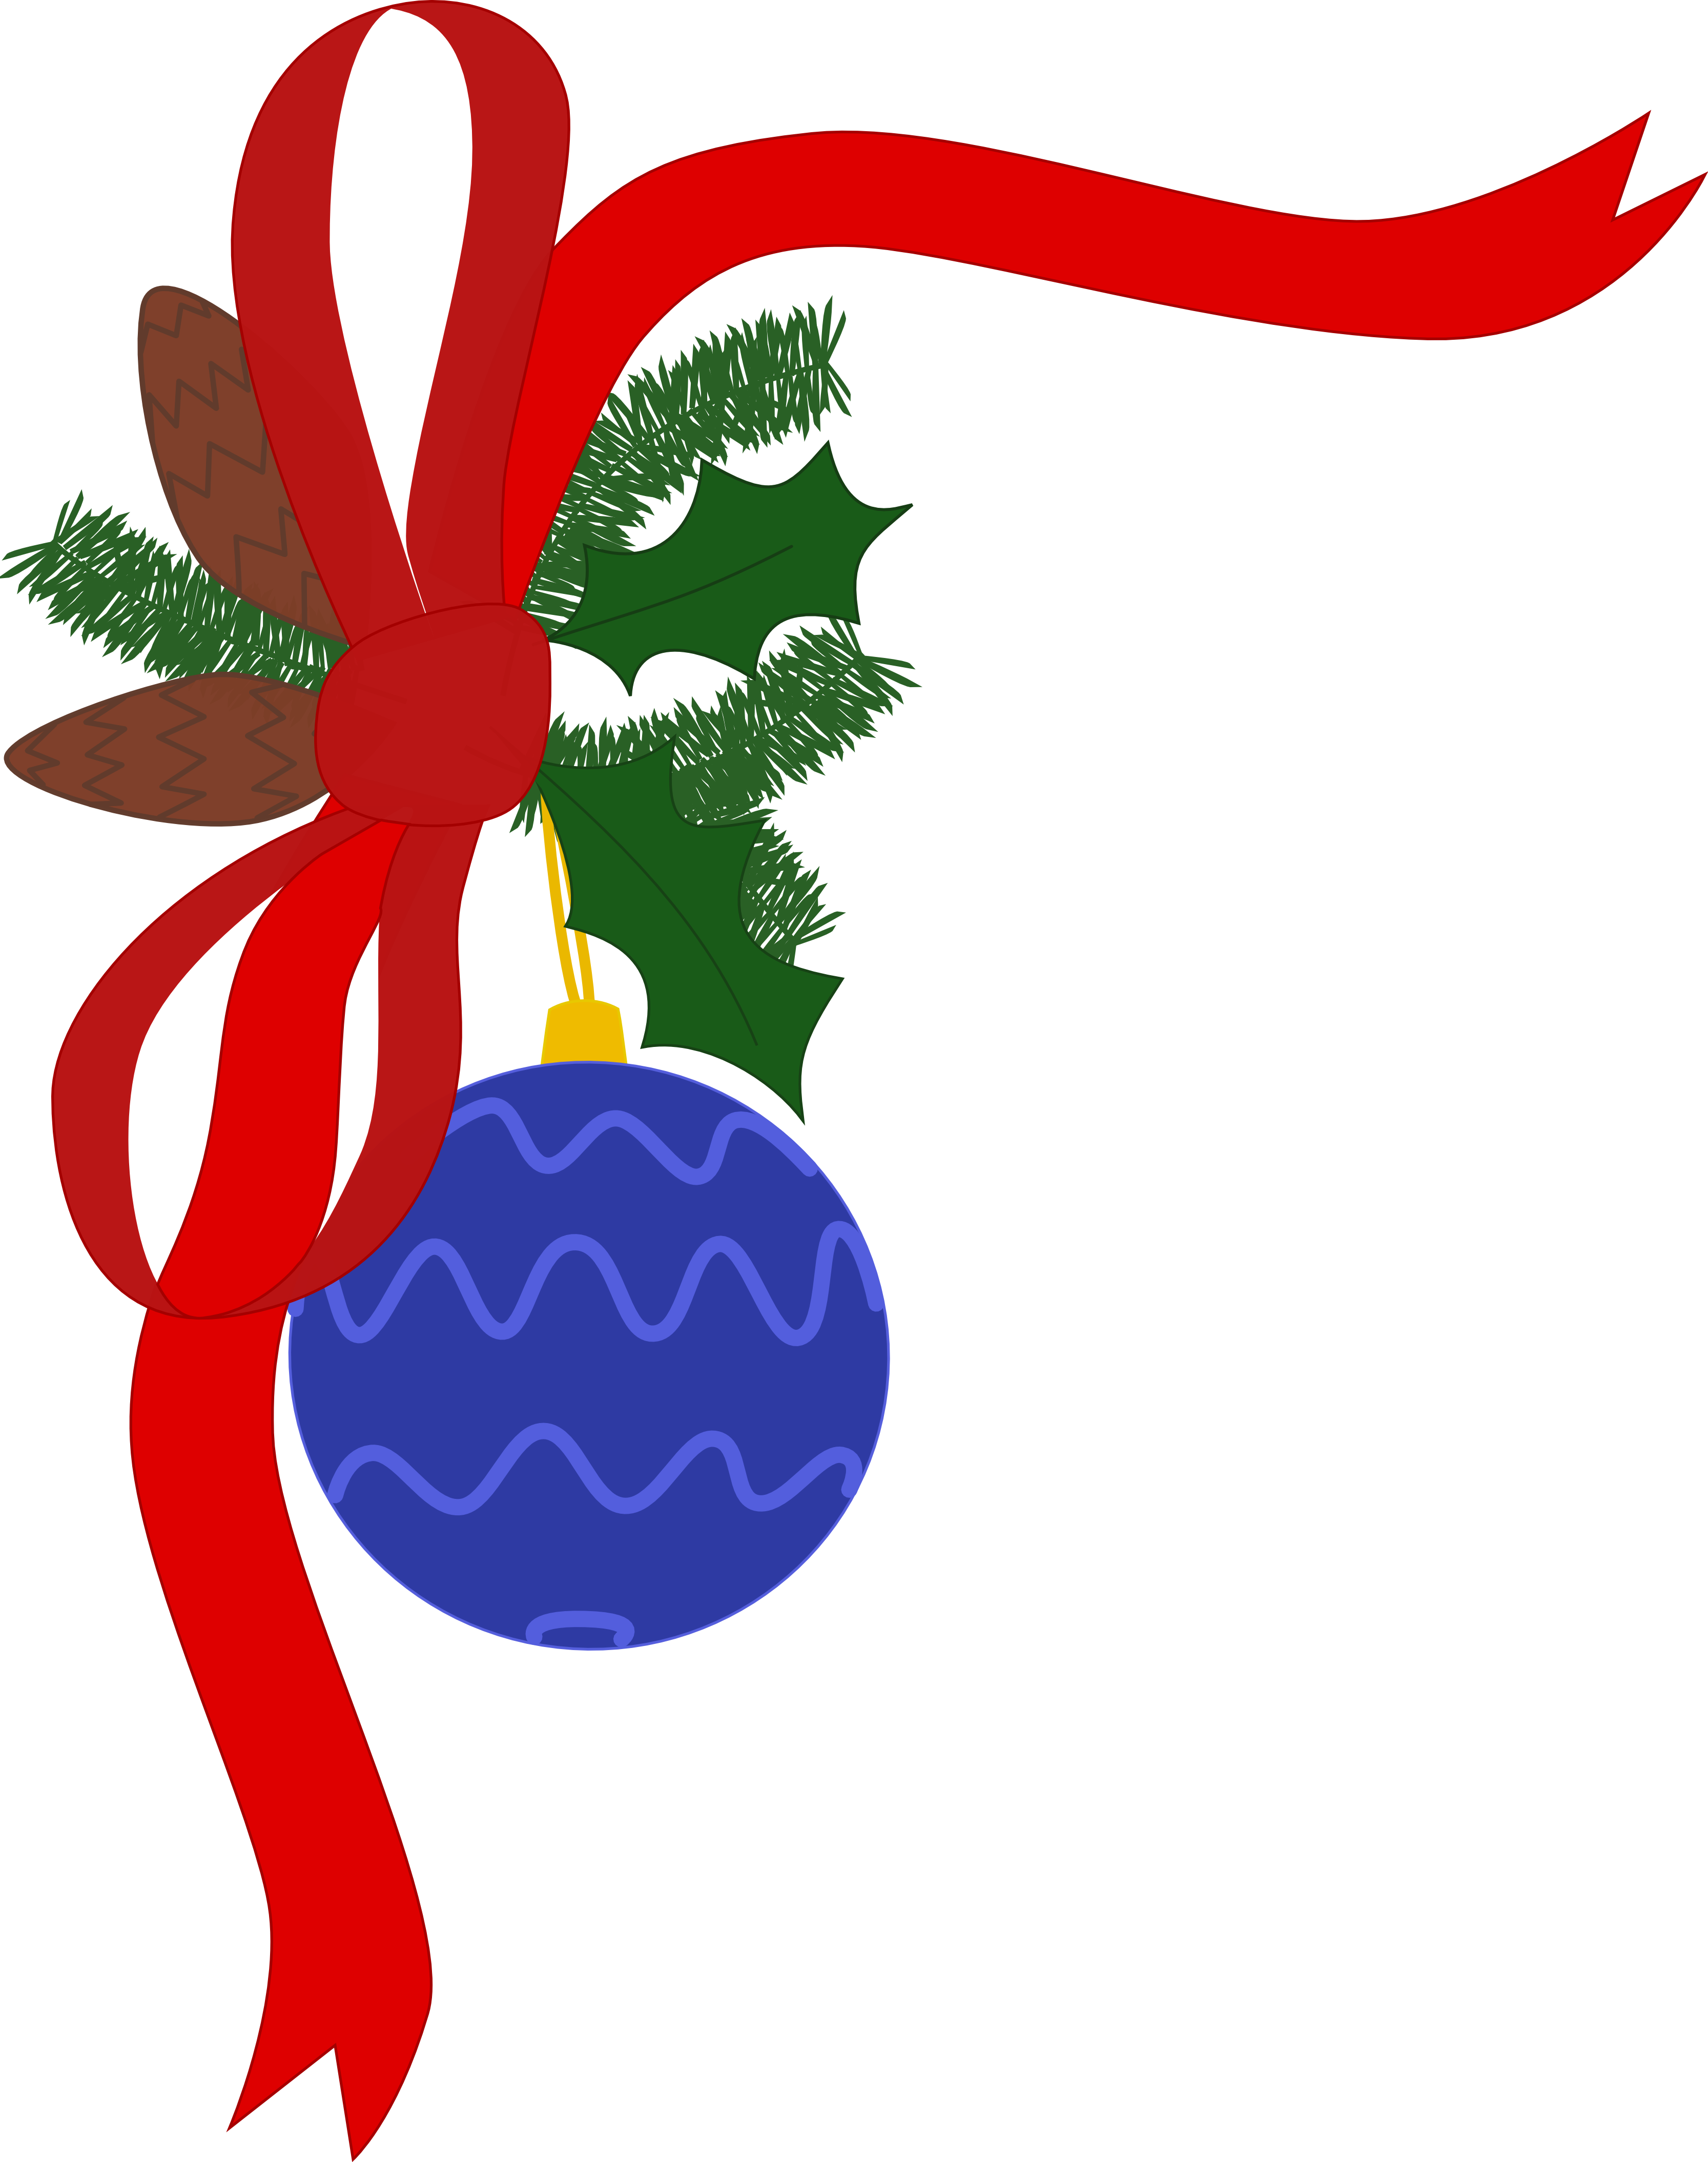 Free peaceful cliparts download. 1 clipart christmas clip free stock